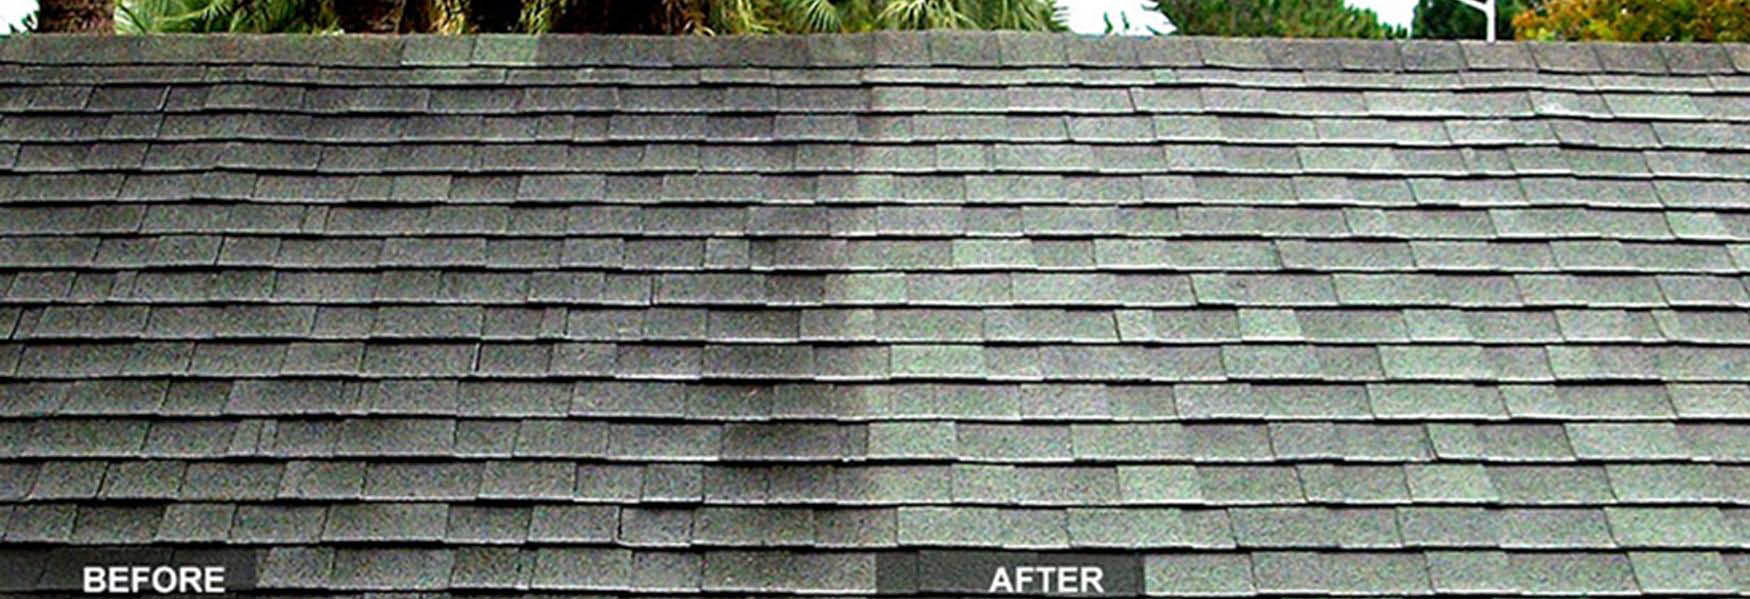 Professional Roof Cleaning Orlando Homeowners, Community Managers and Businesses Trust